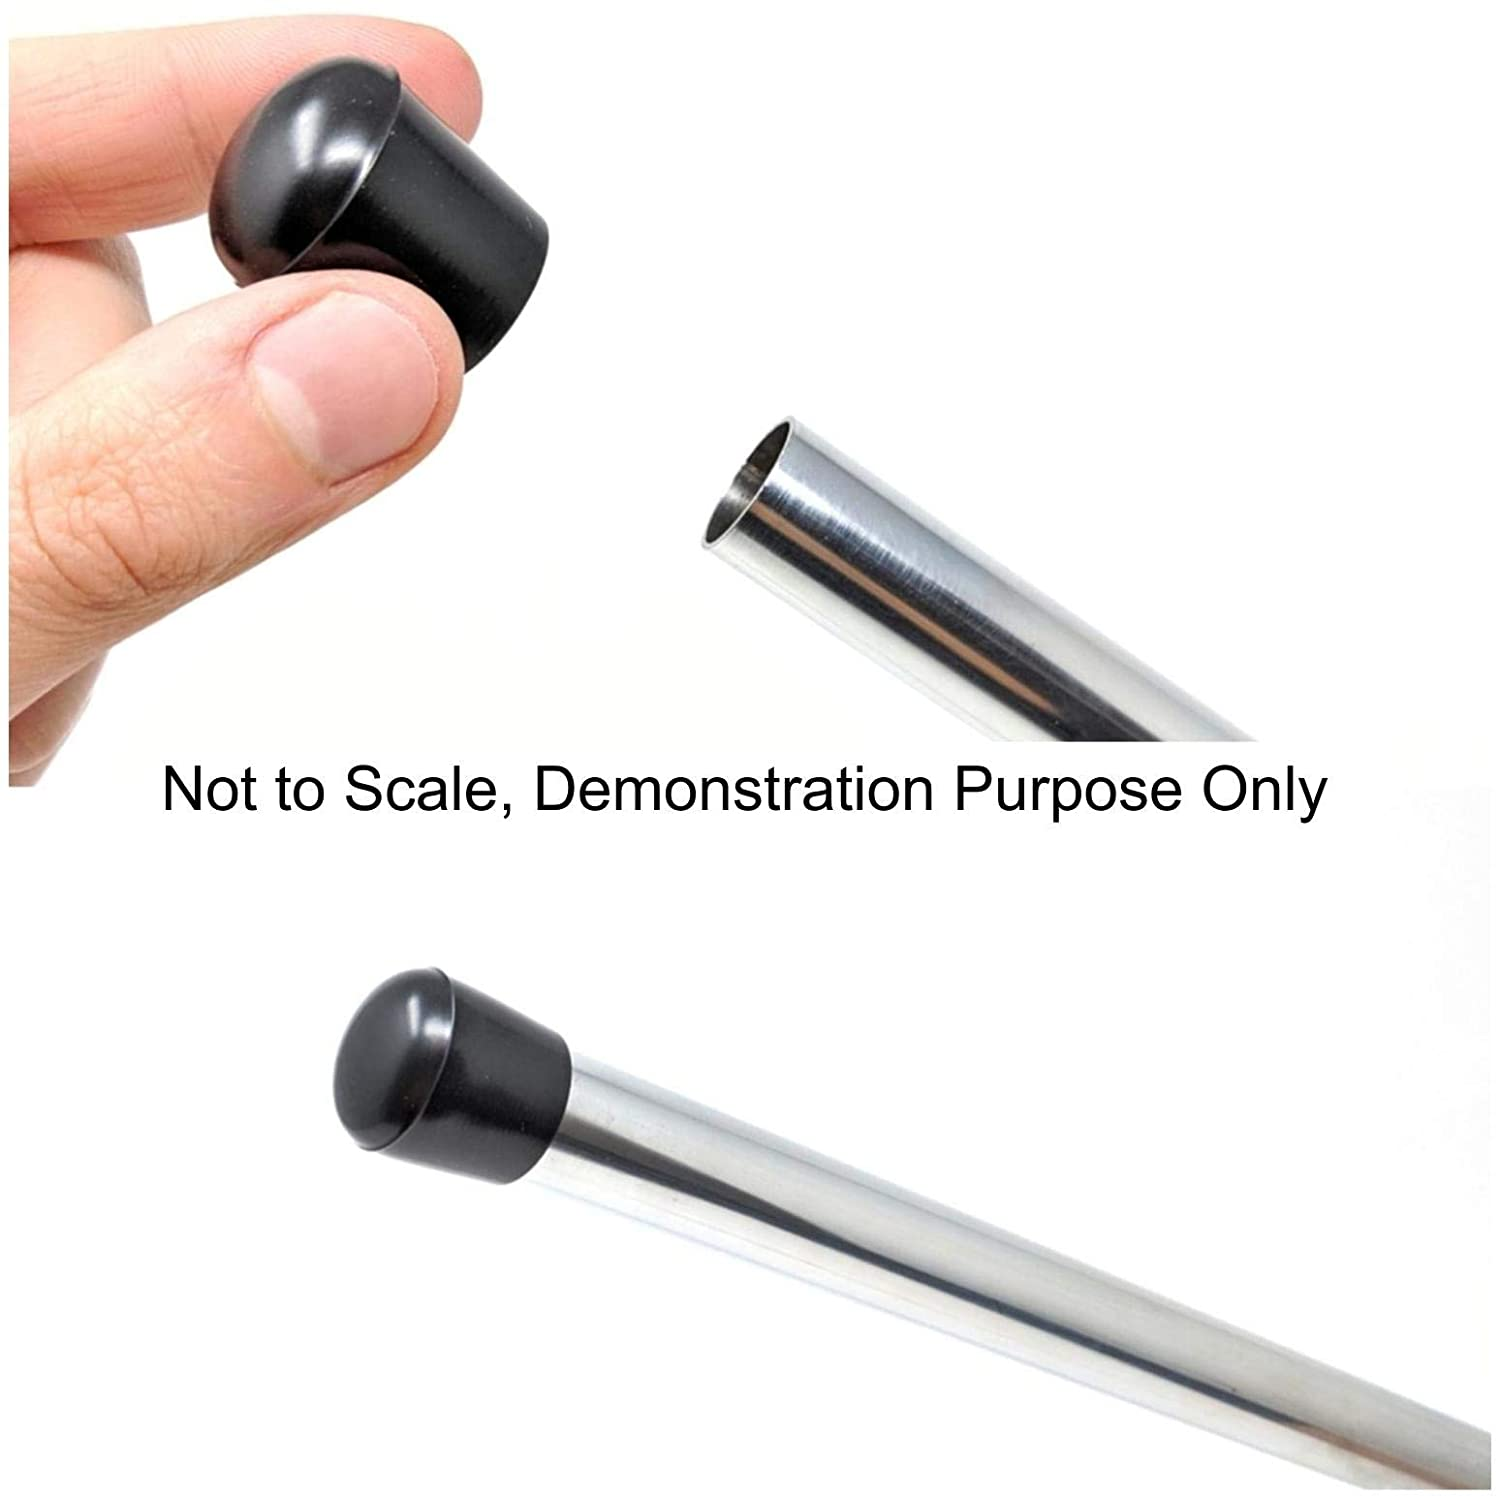 Rubber Ferrules with Hard-Wearing Steel Insert Range of Sizes Made in Germany Black, 18mm - See Second Image Before Ordering This Size, Pack of 8 Multipurpose Feet